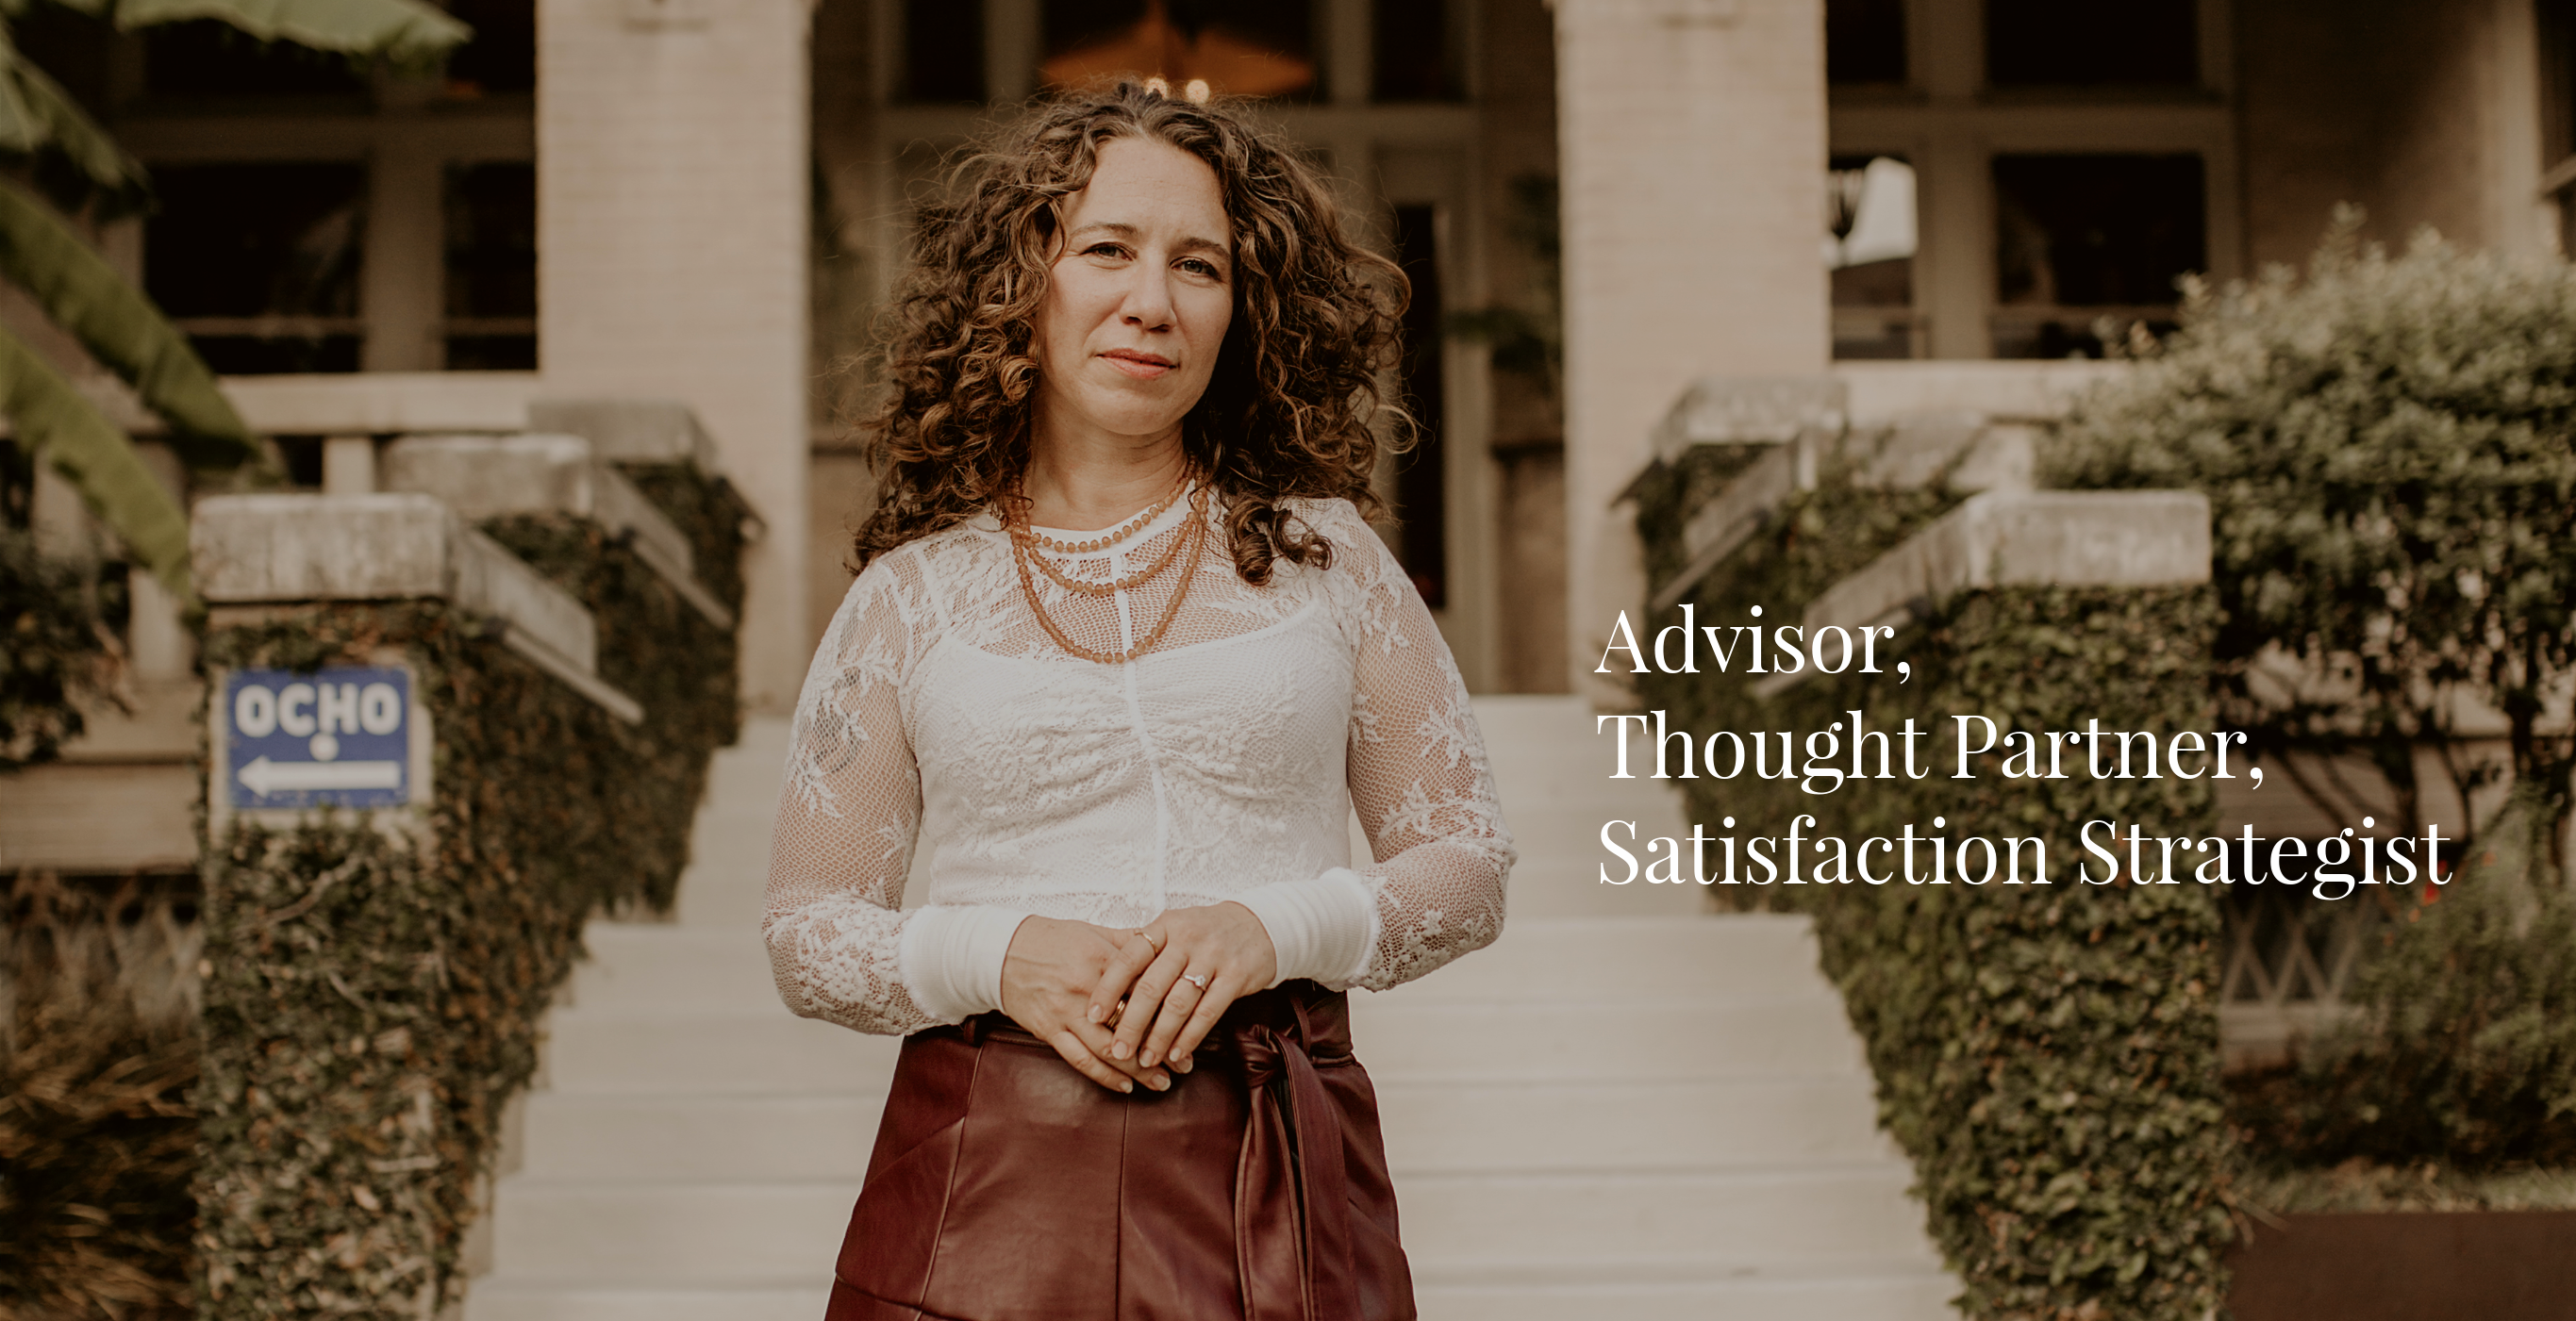 Advisor, Thought Partner, Satisfaction Strategist